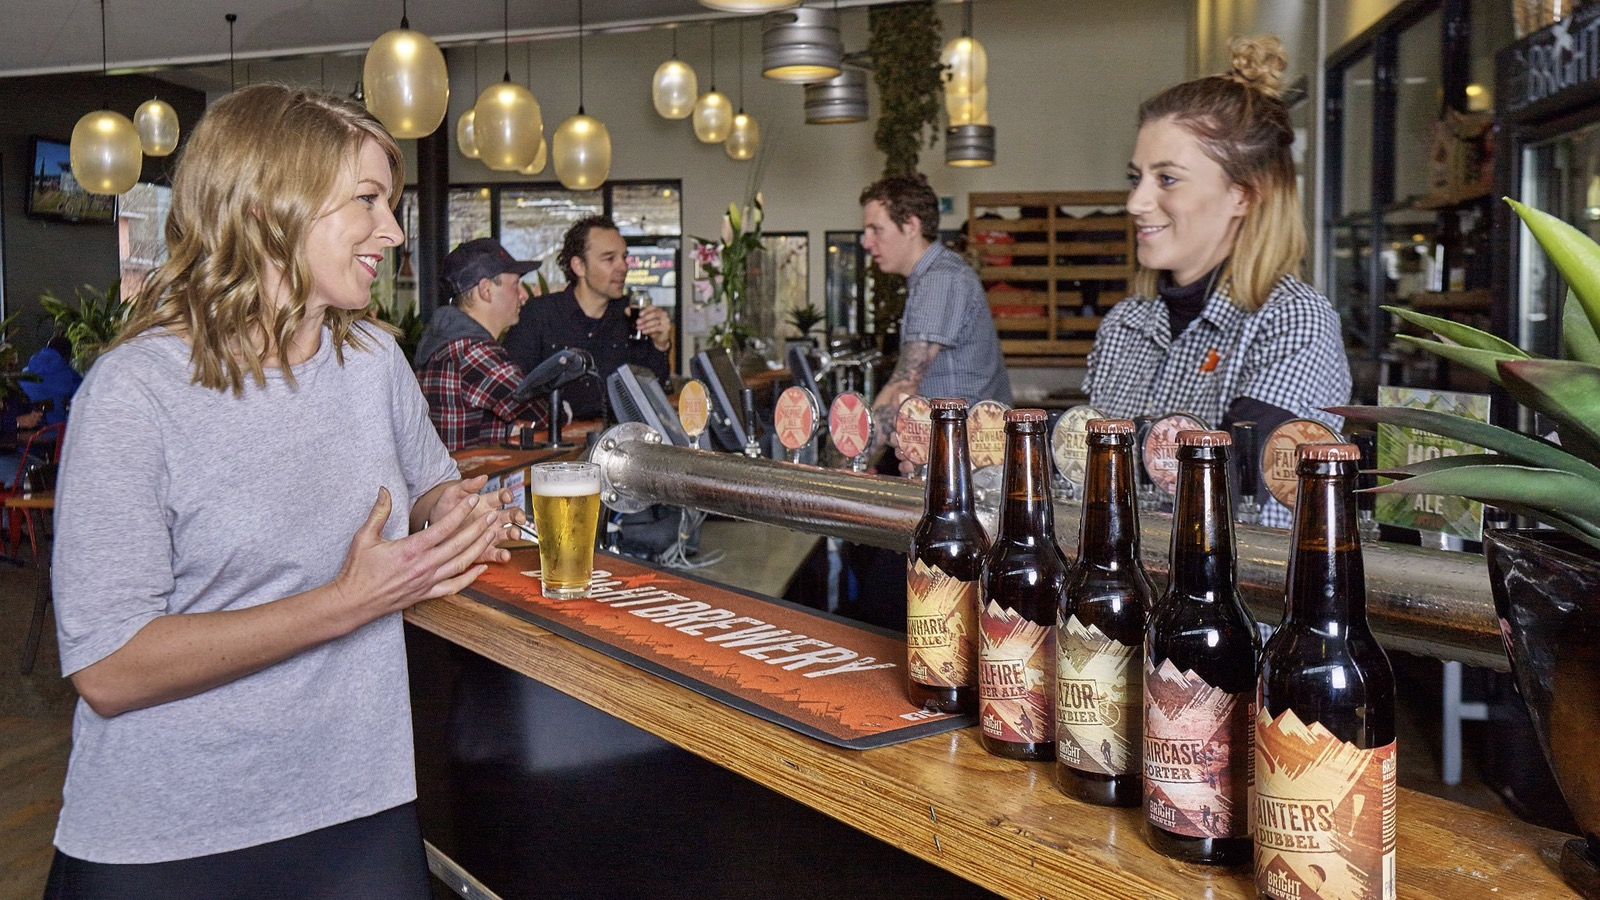 Customers ordering beer at Bright Brewery's bar